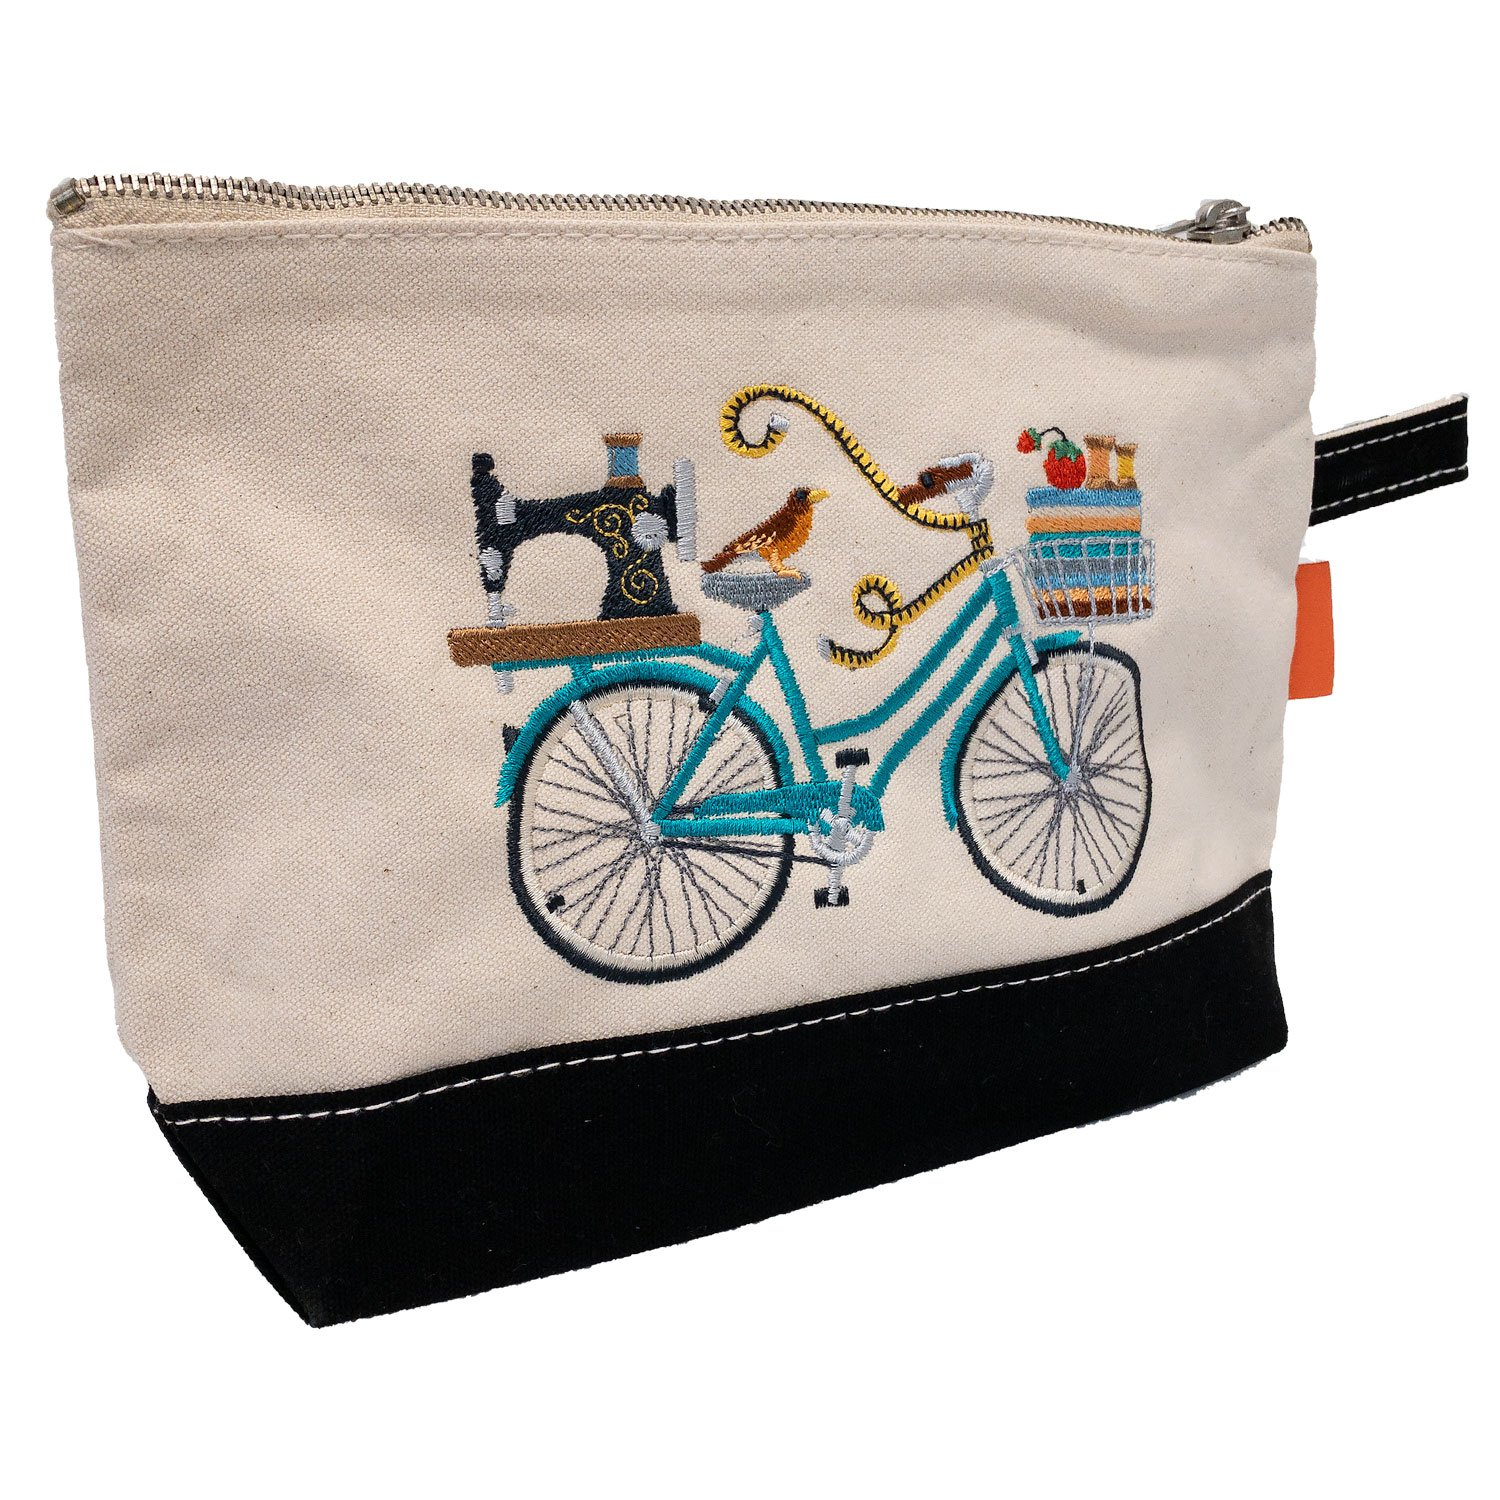 Embroidered Zip Pouch Black Crafting Bicycle